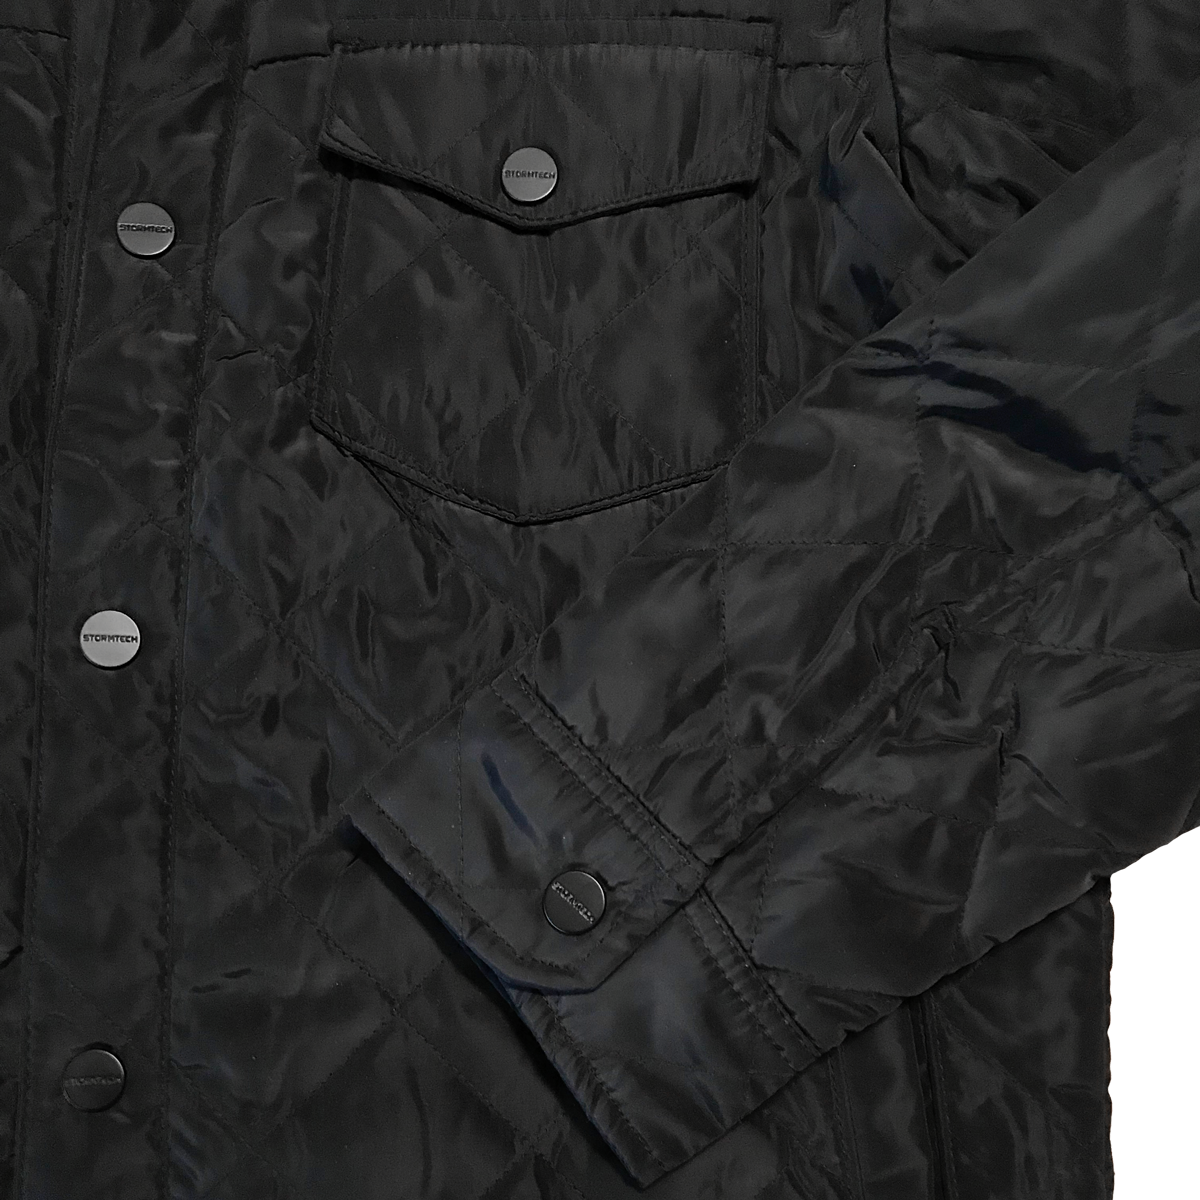 RB Diamond Back Jacket - pocket & sleeve detail